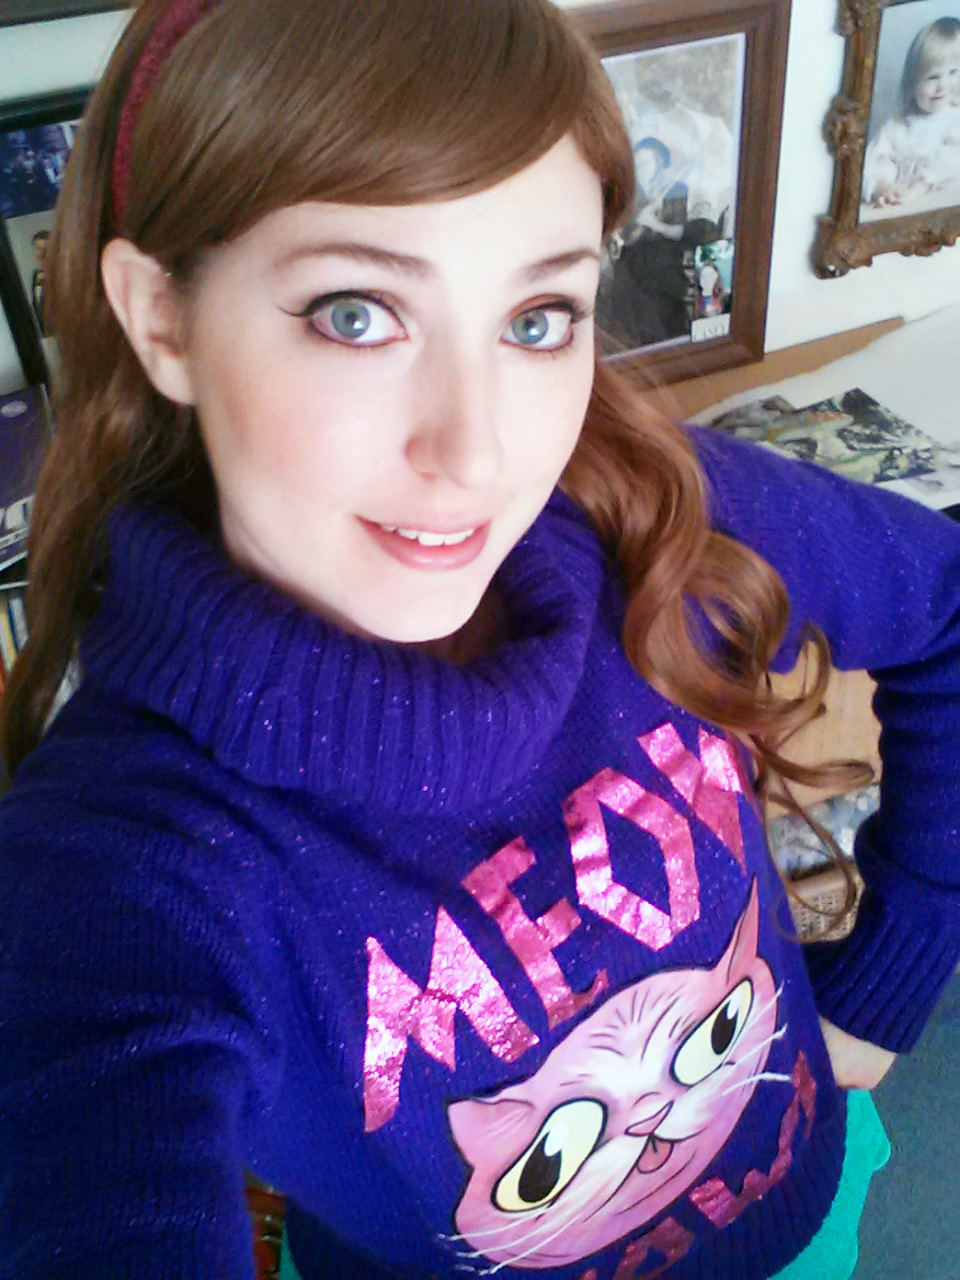 Mabel Pines Sweaters Cosplay